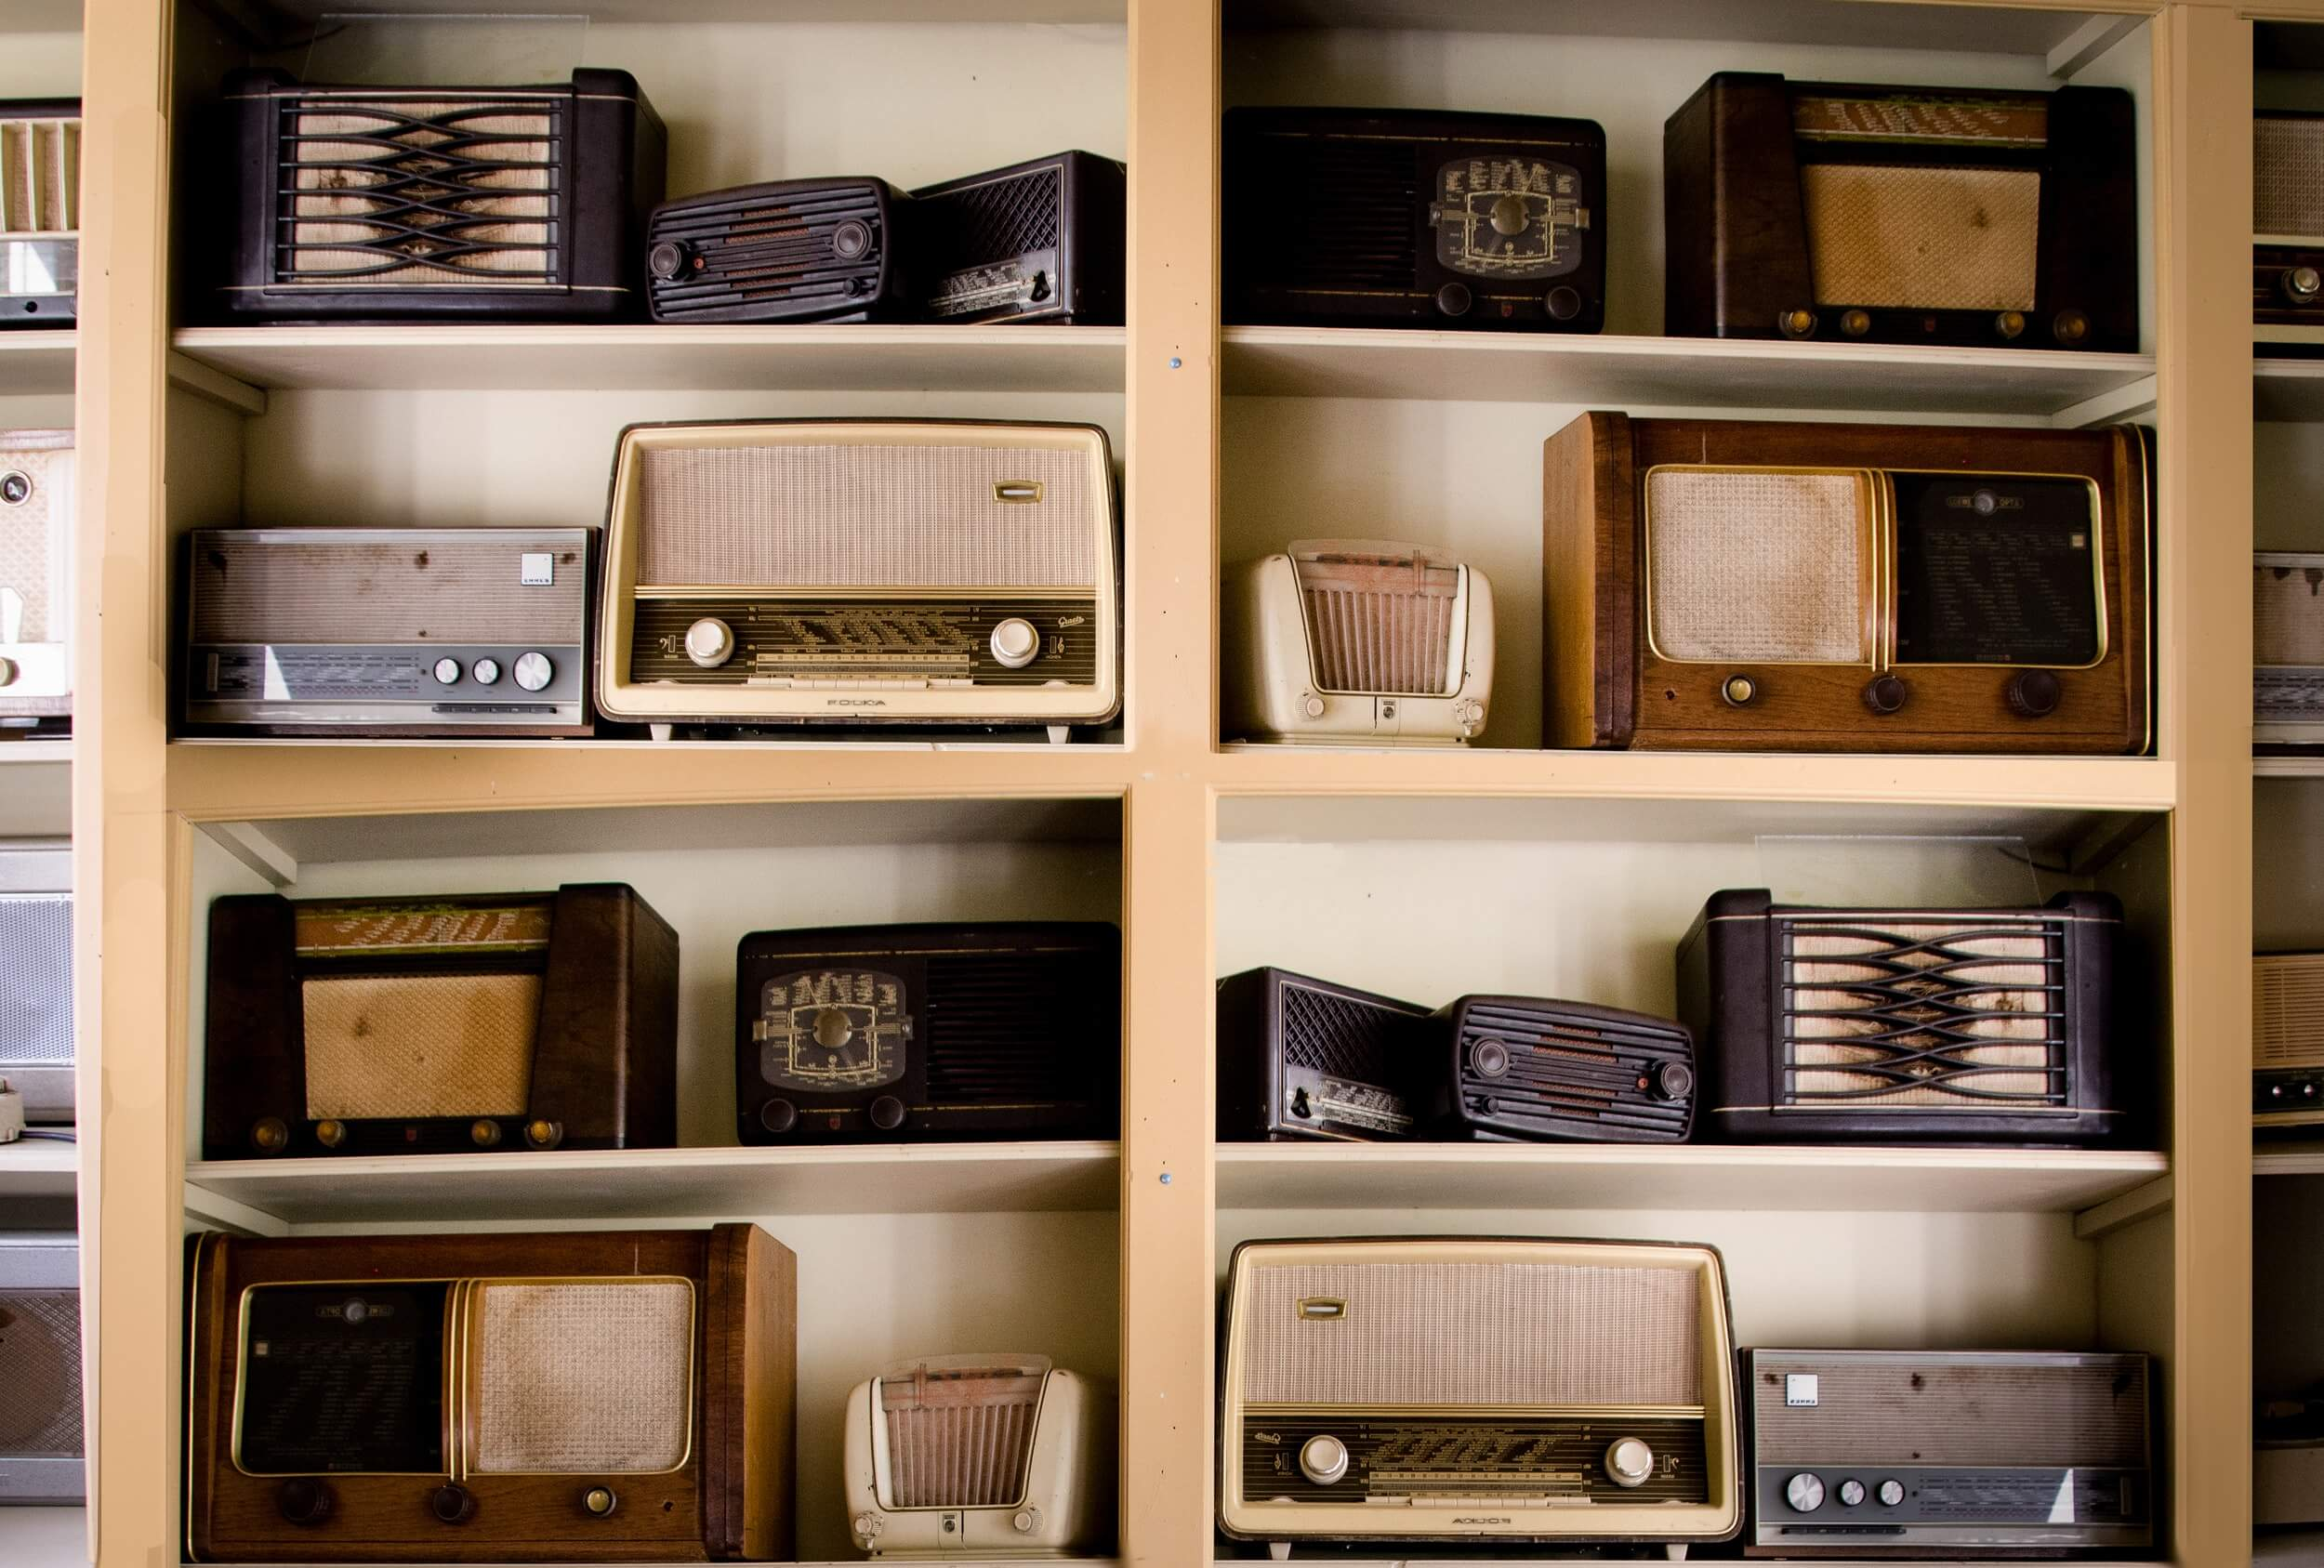 shelf with old radios